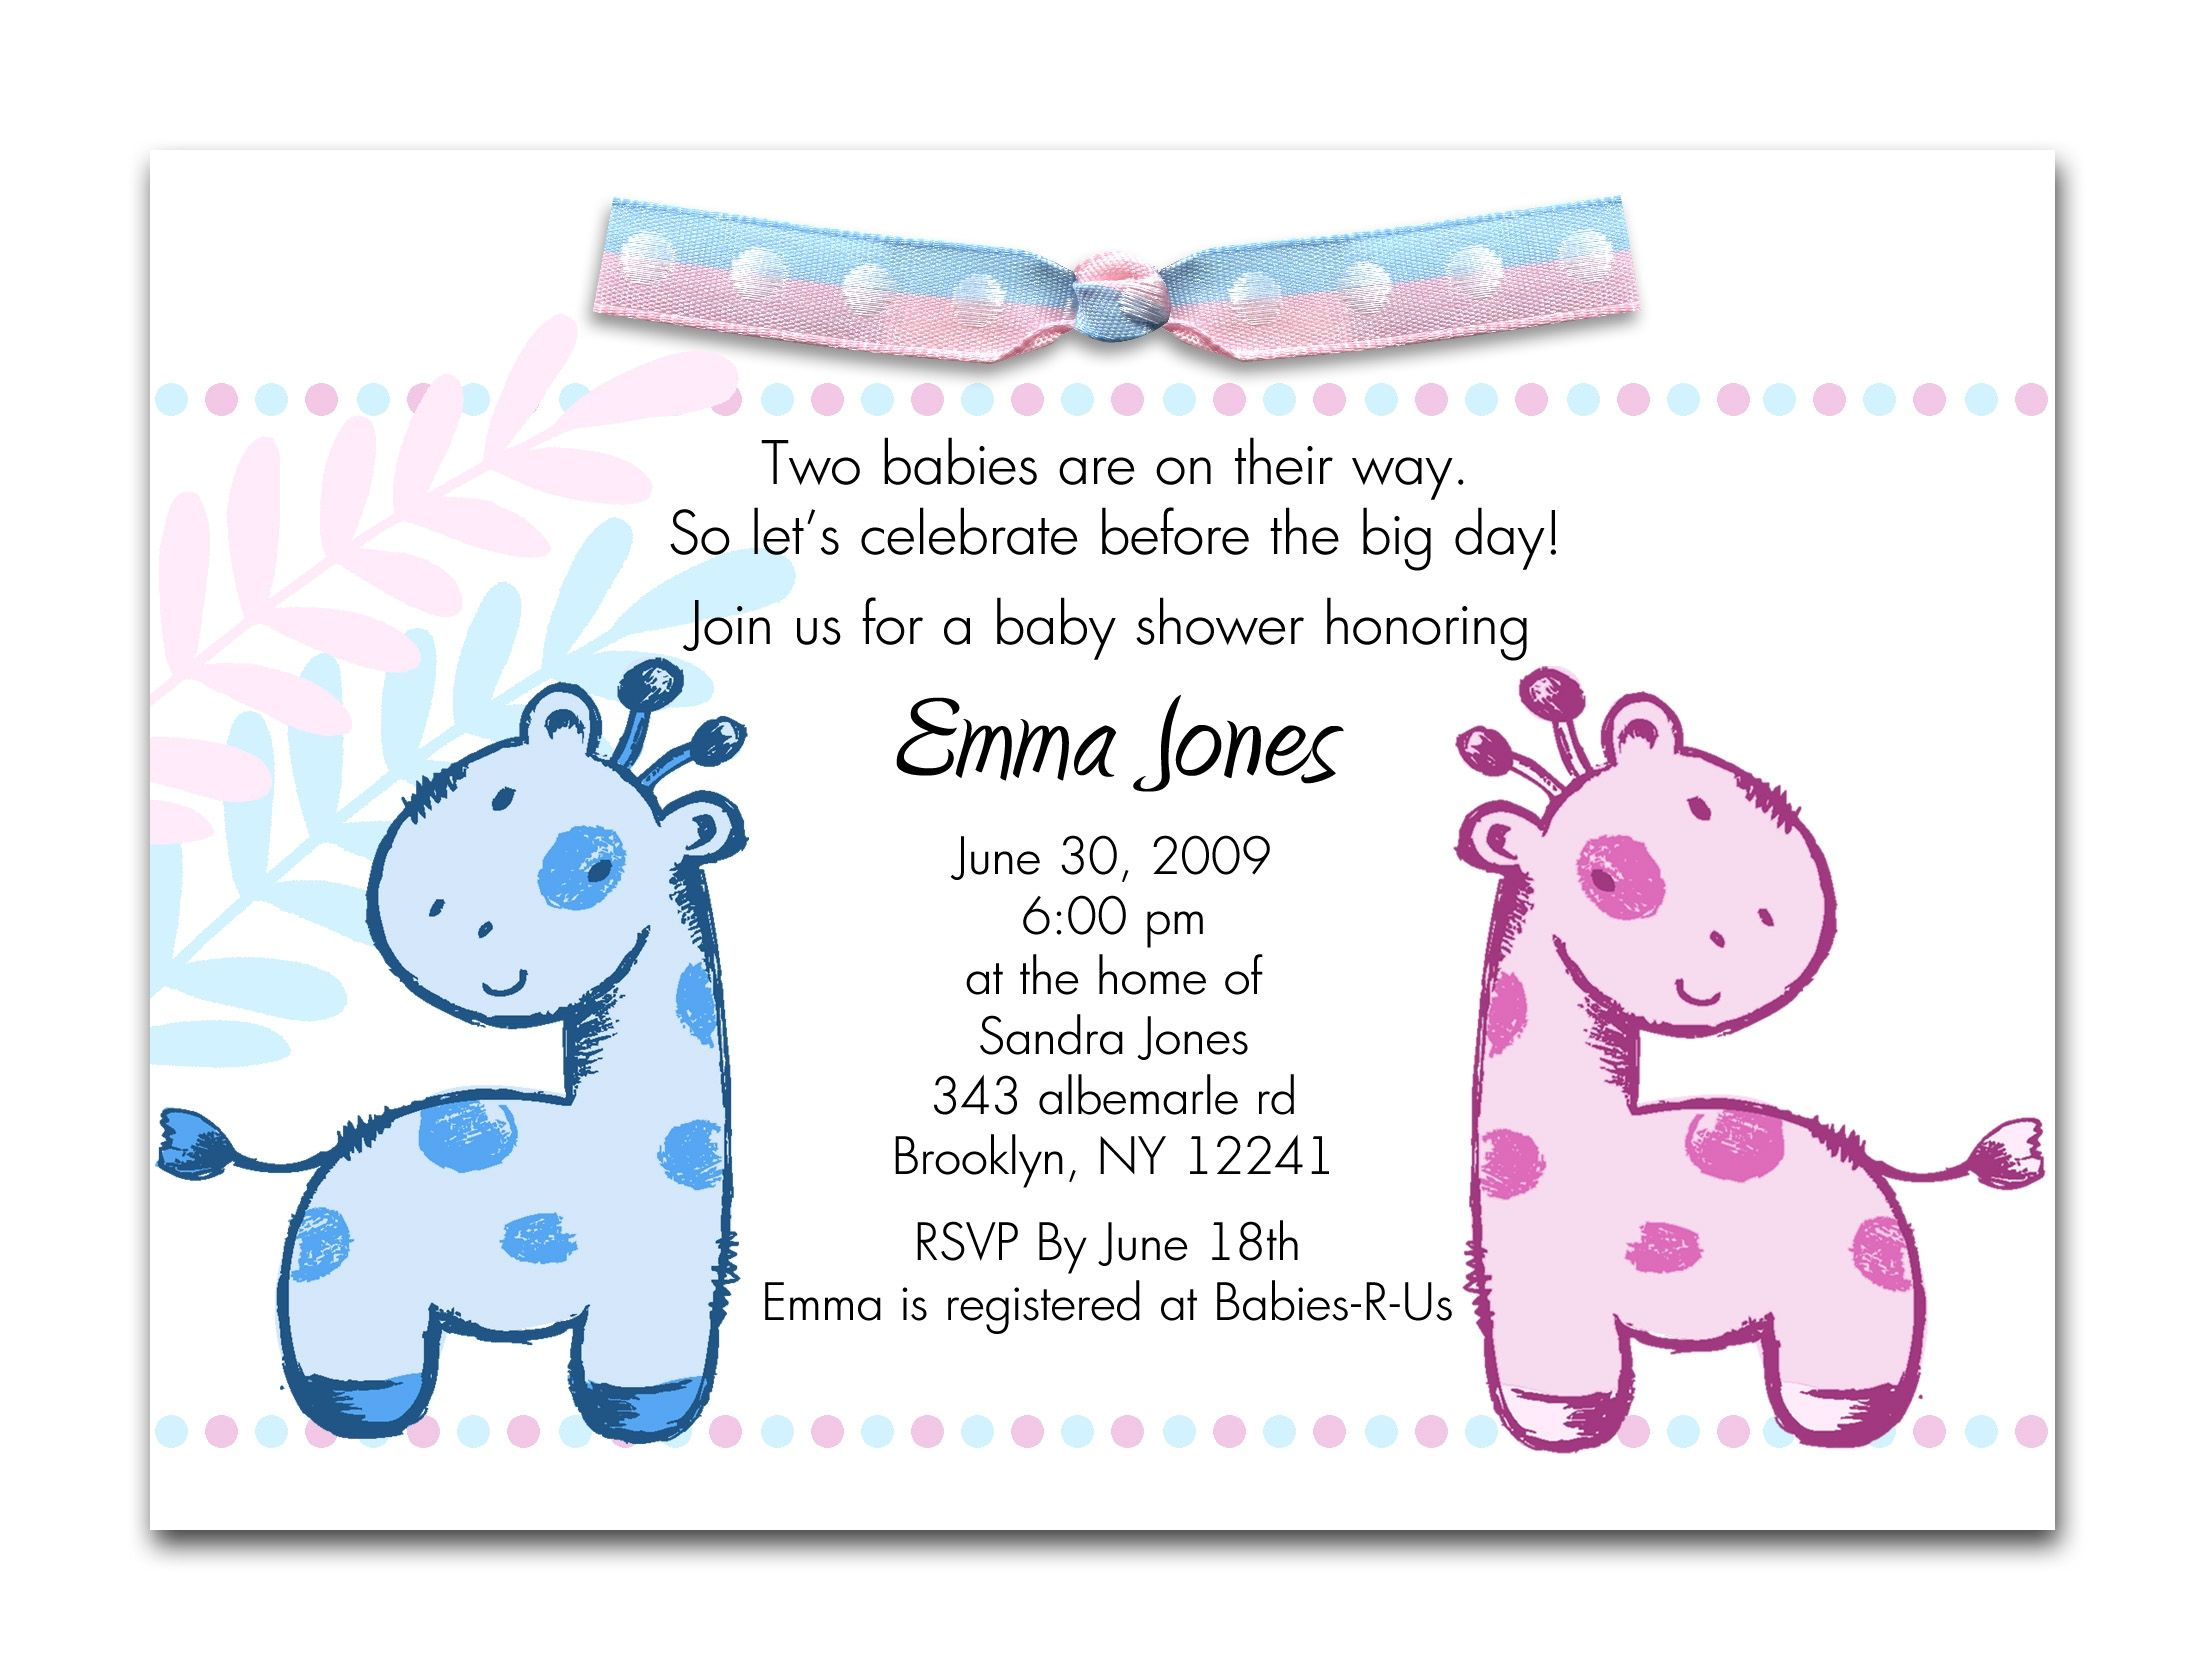 Baby Shower Electronic Invitations | http://atwebry.info | Pinterest ...